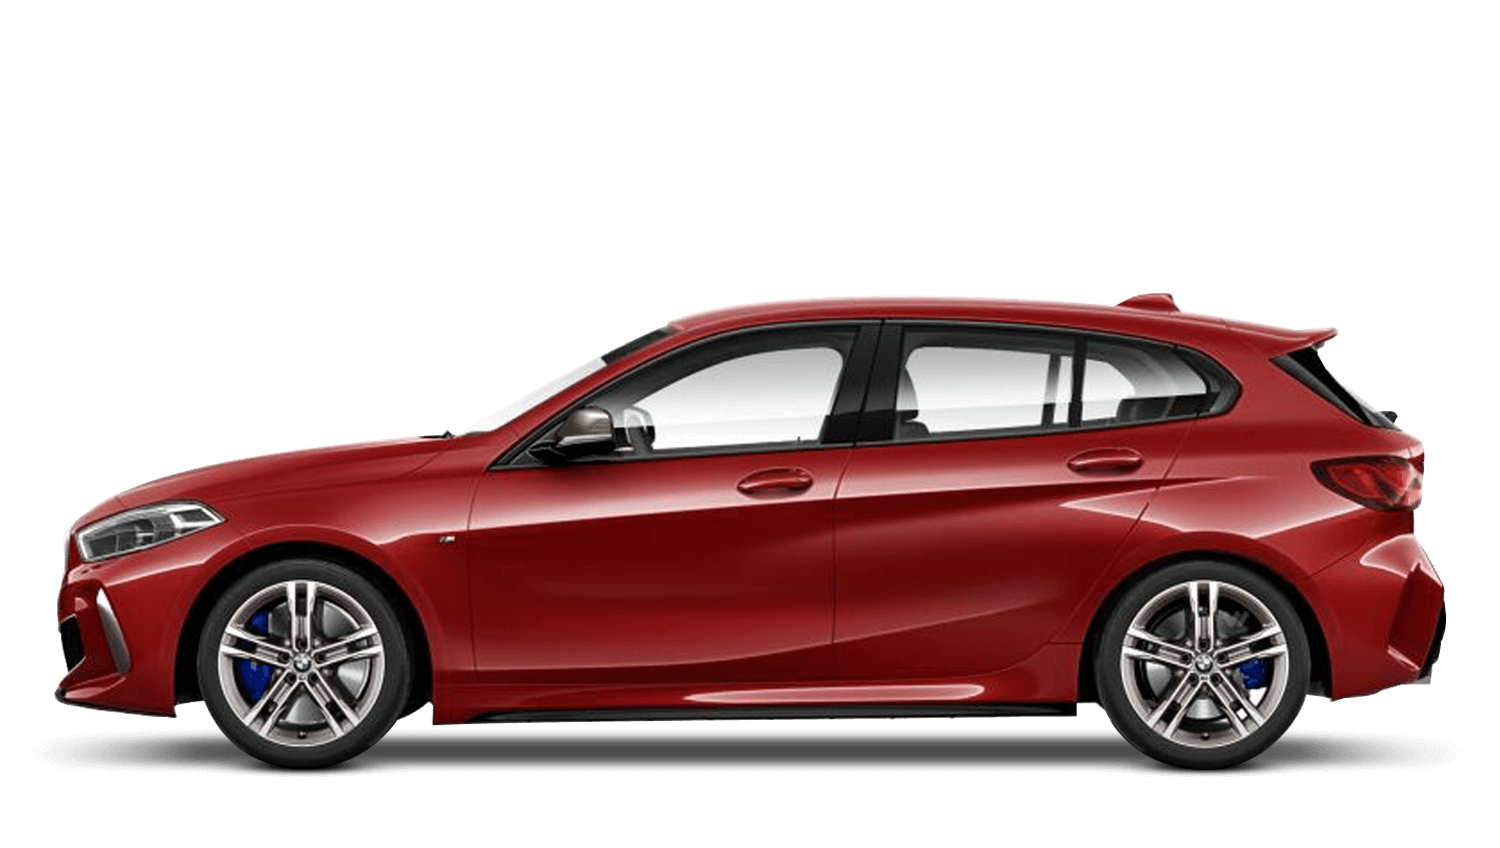 Melbourne Red (Metallic) BMW 1 Series Sports Hatch